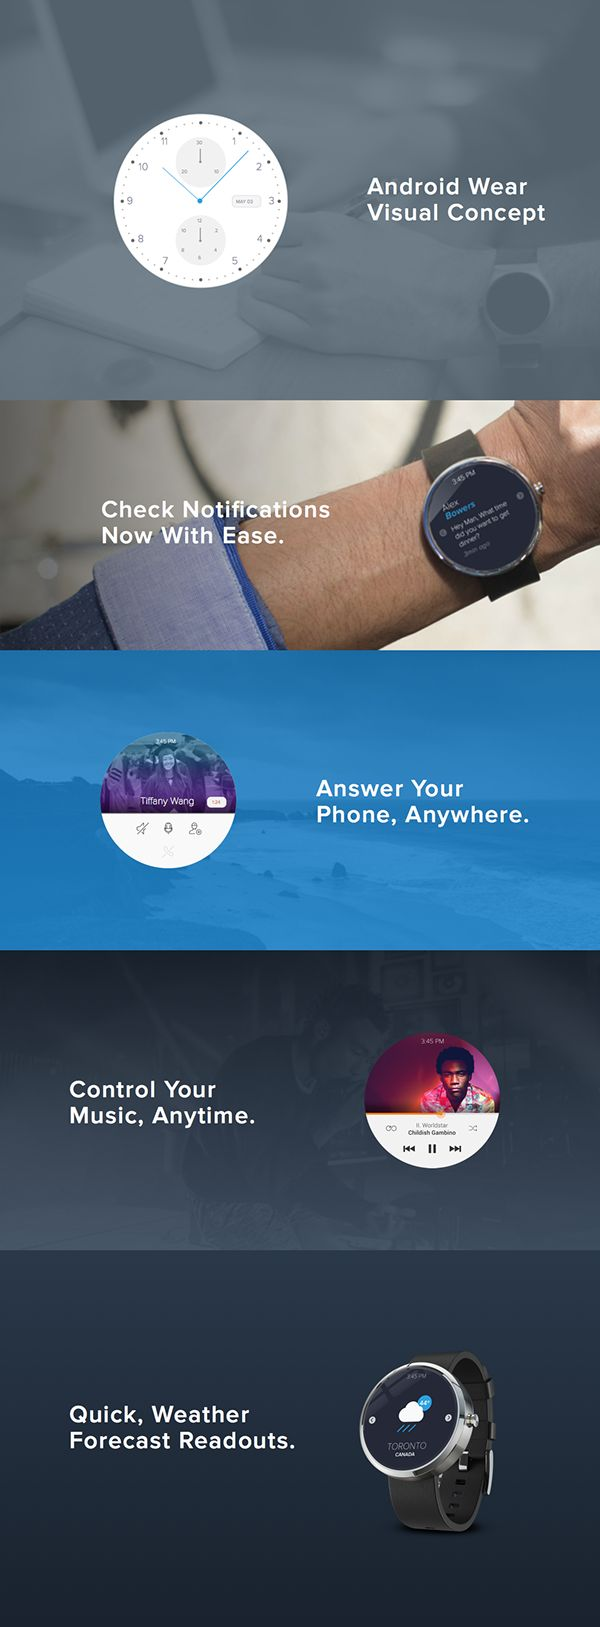 Android Wear Visual Concept by Joseph Barrientos, via Behance